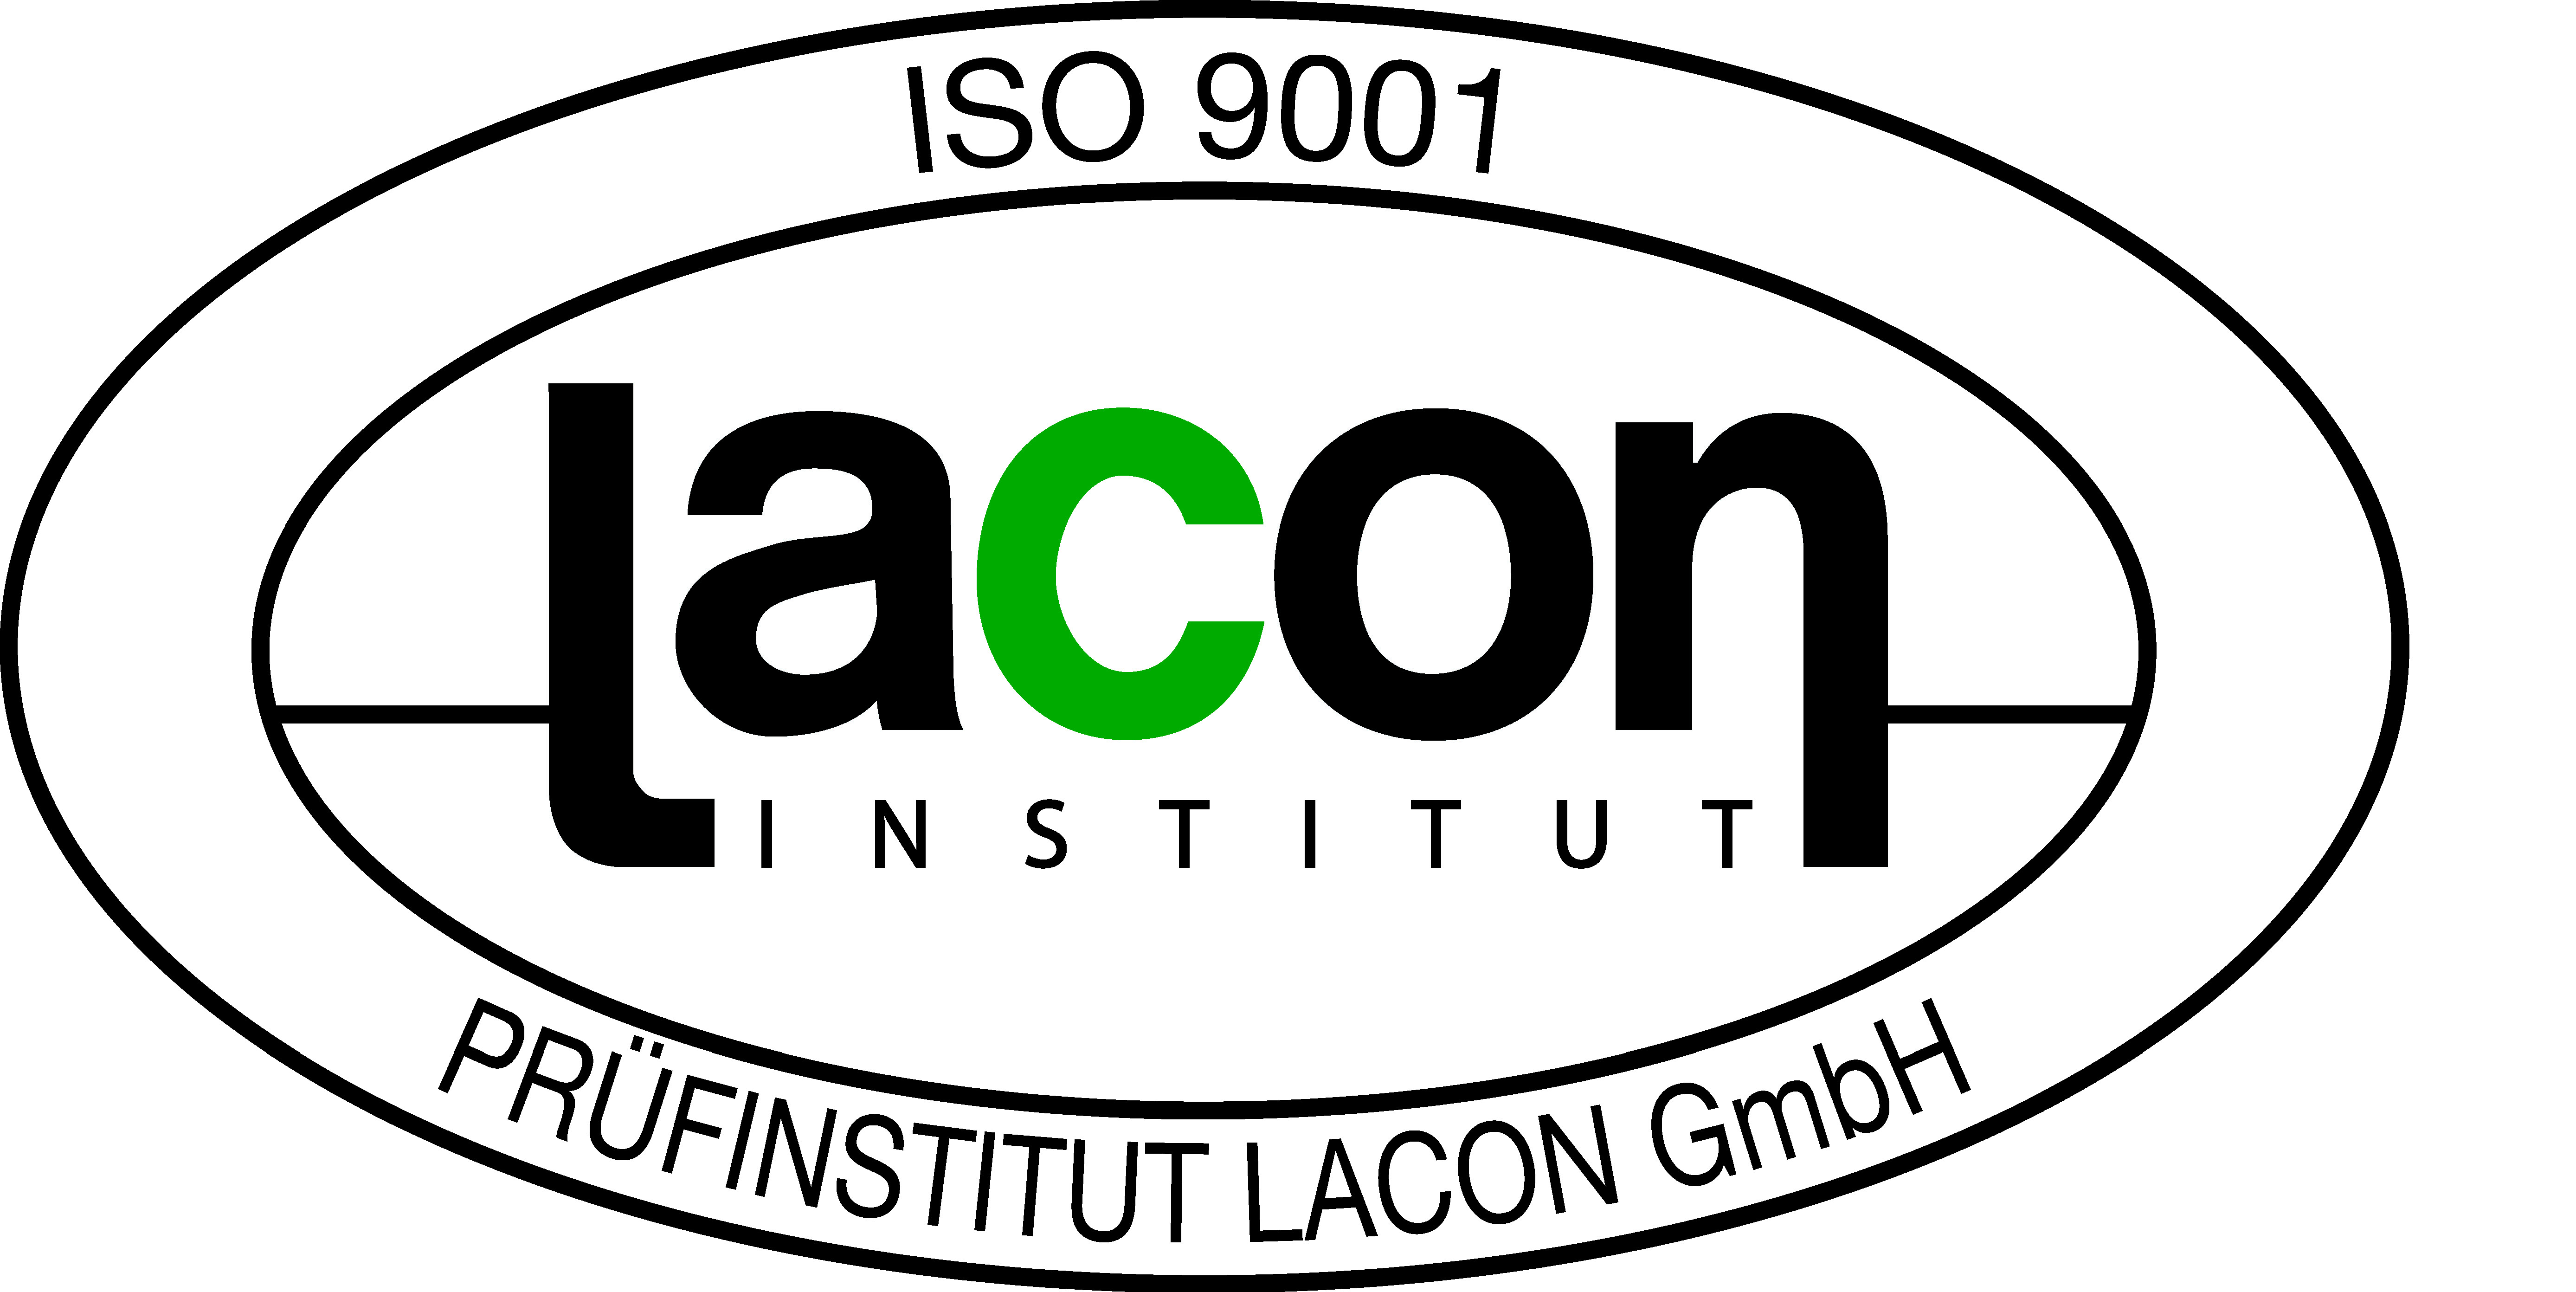 Lacon Siegel_oval_ISO 9001.jpg